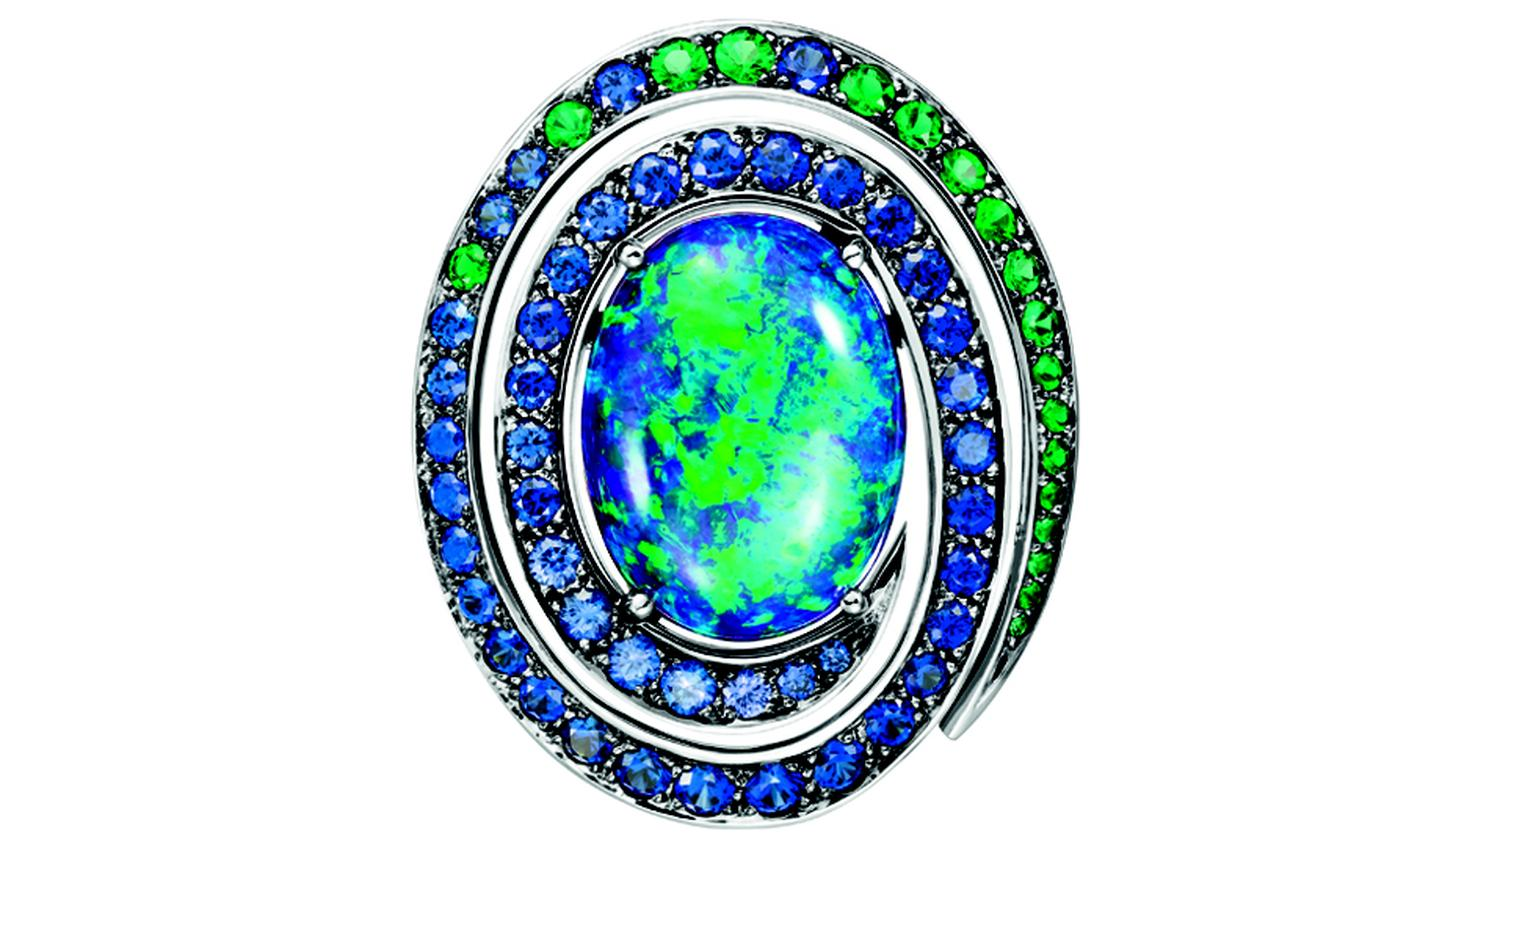 BOUCHERON. Aiguebelle earrings, set with an oval opal cabochon, paved with emeralds, blue and purple sapphires, on white gold. POA